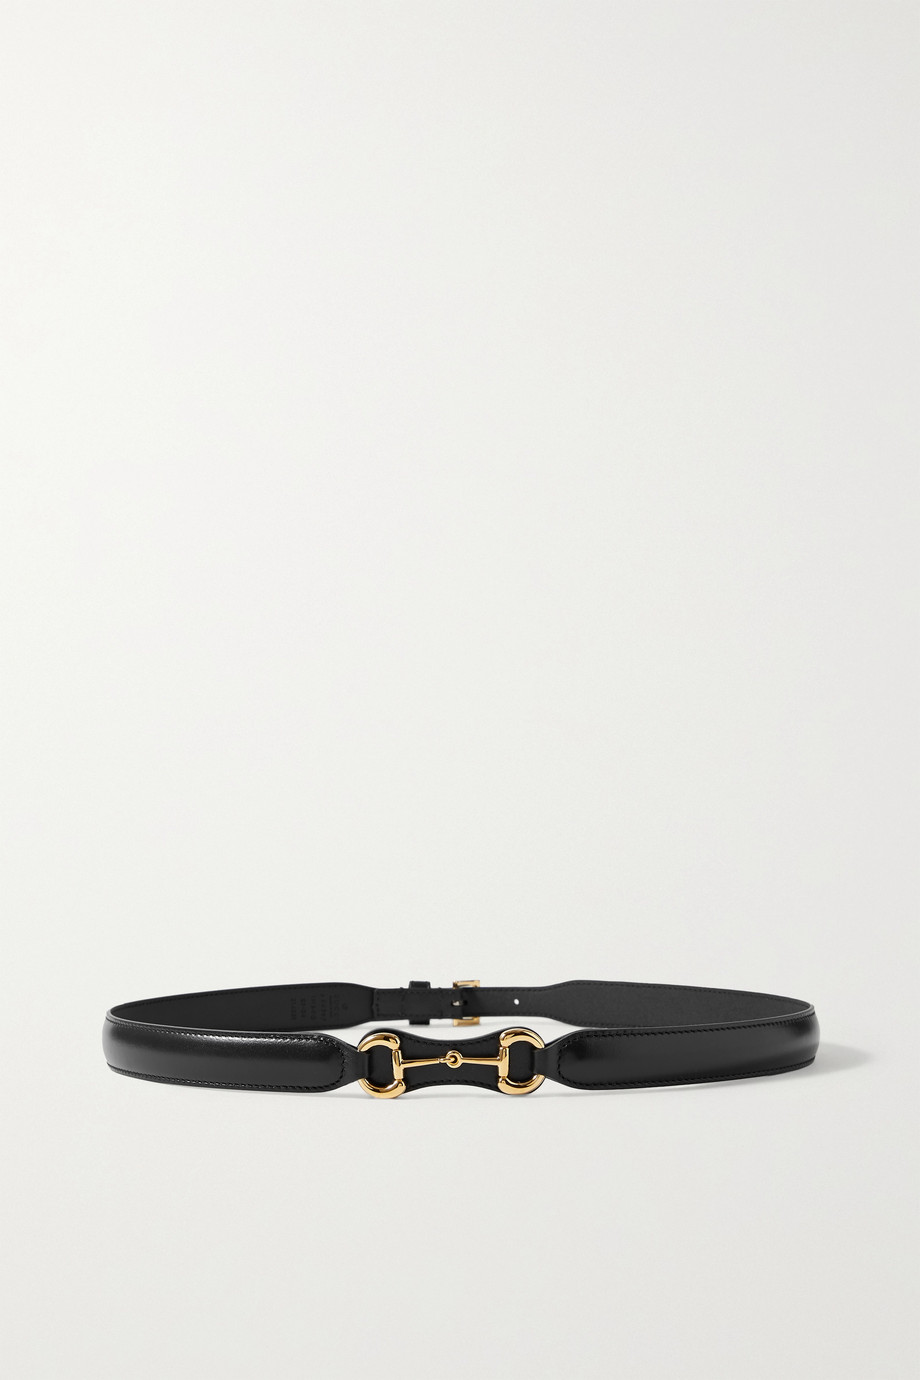 GUCCI 1955 horsebit-detailed leather belt